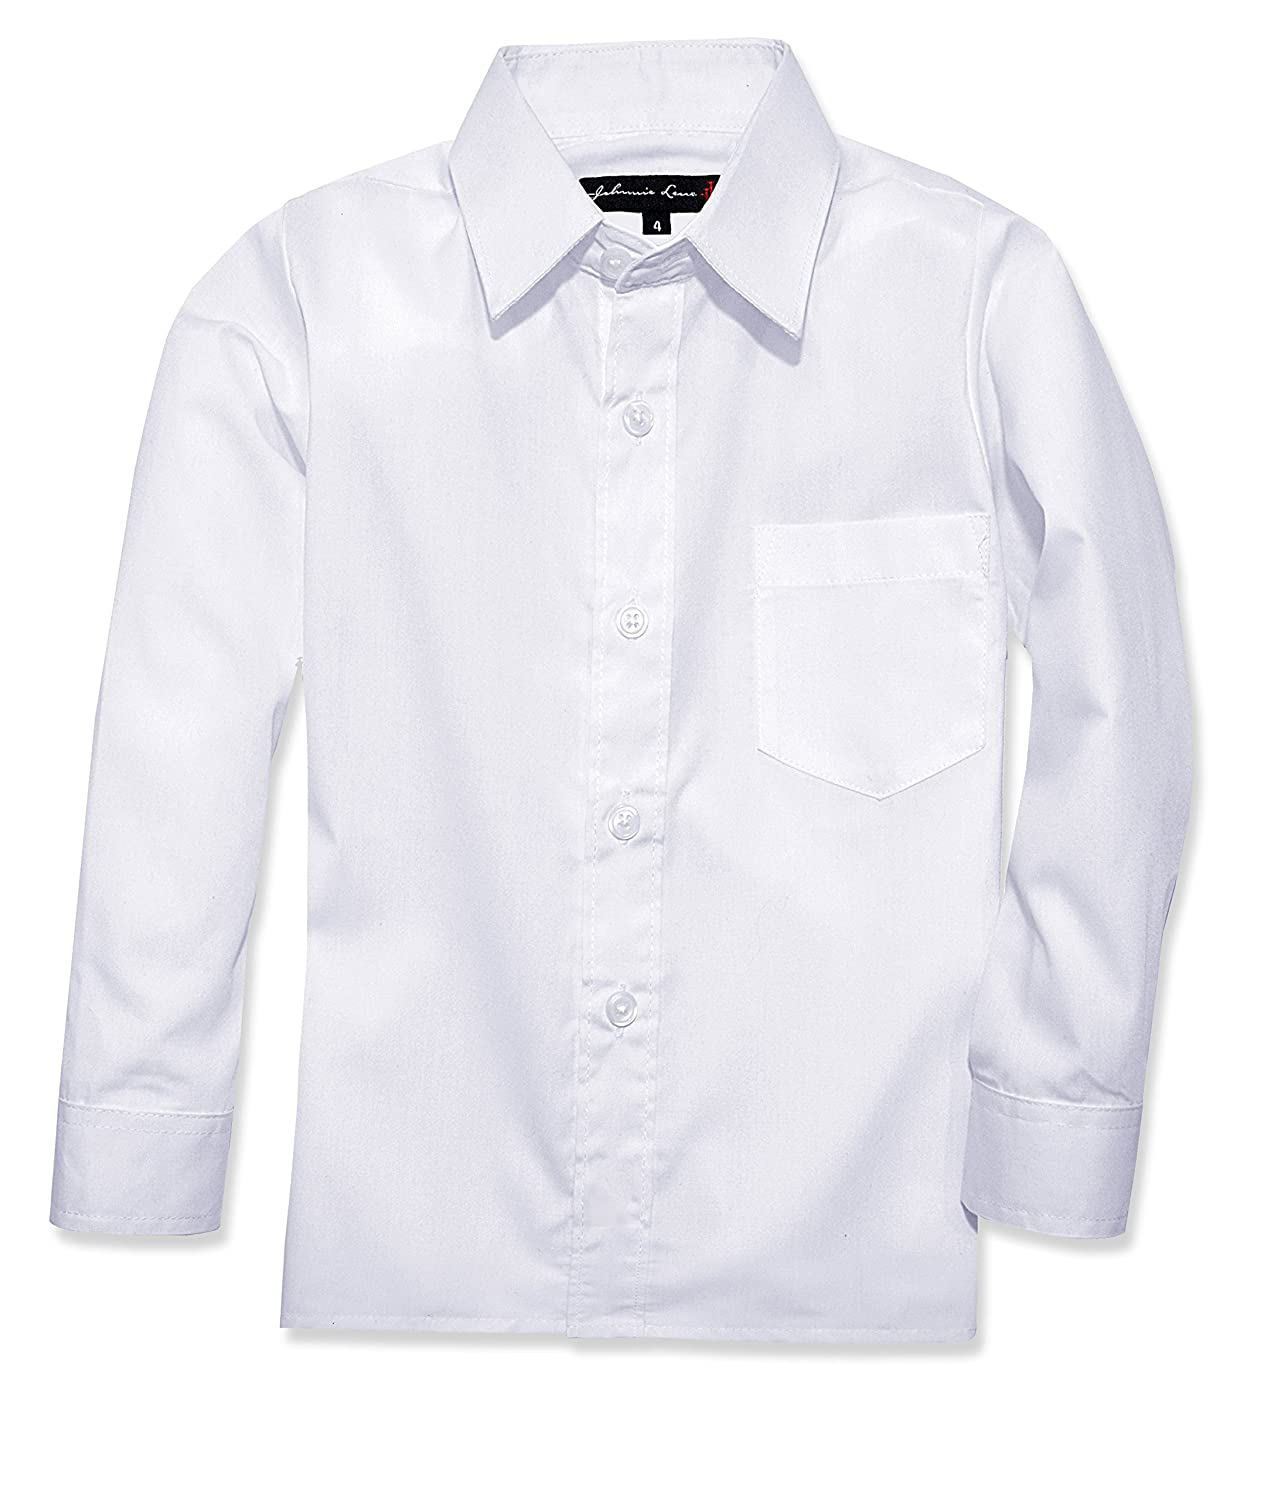 Johnnie Lene Boys Long Sleeves Dress Shirt from Baby to Teen